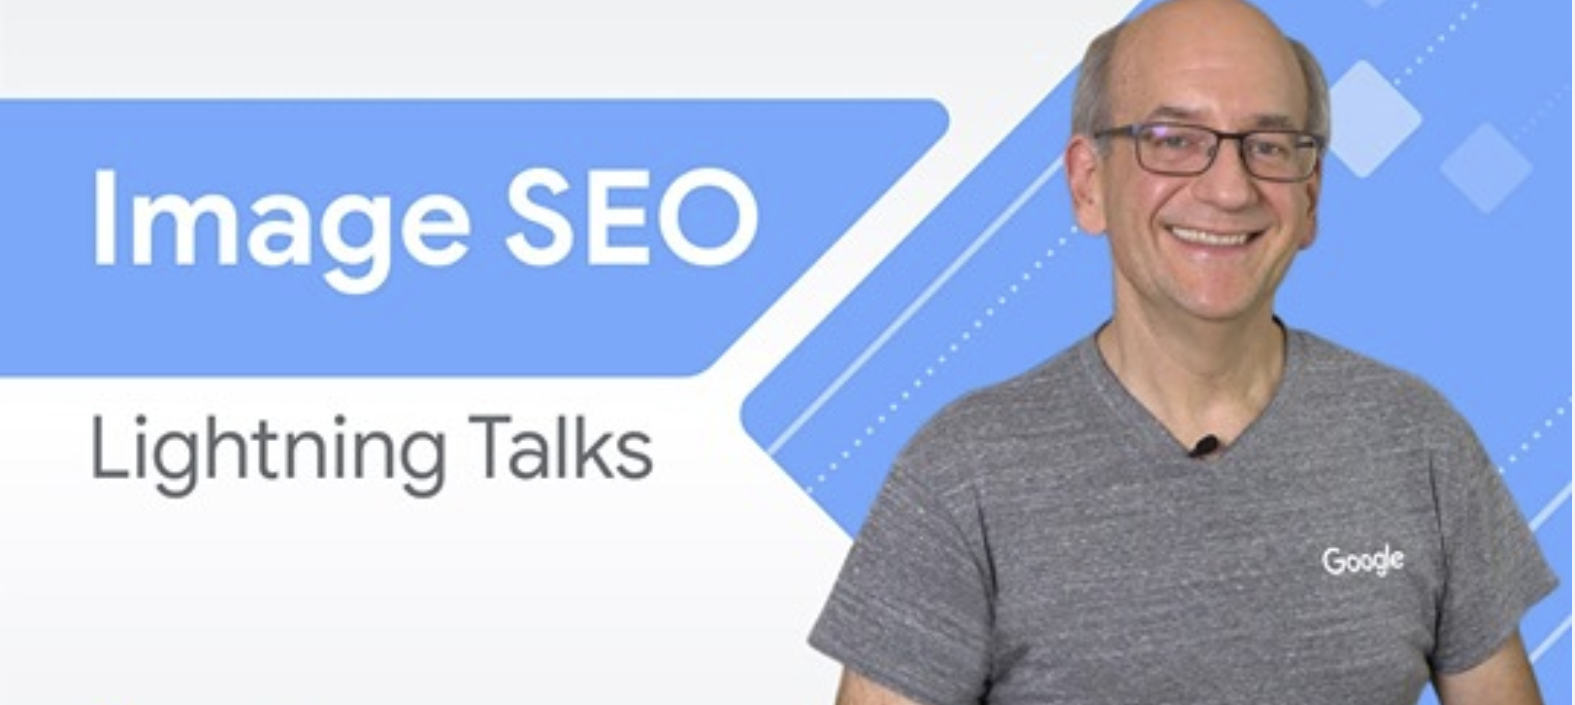 Google Lightning Talks: Bilder SEO